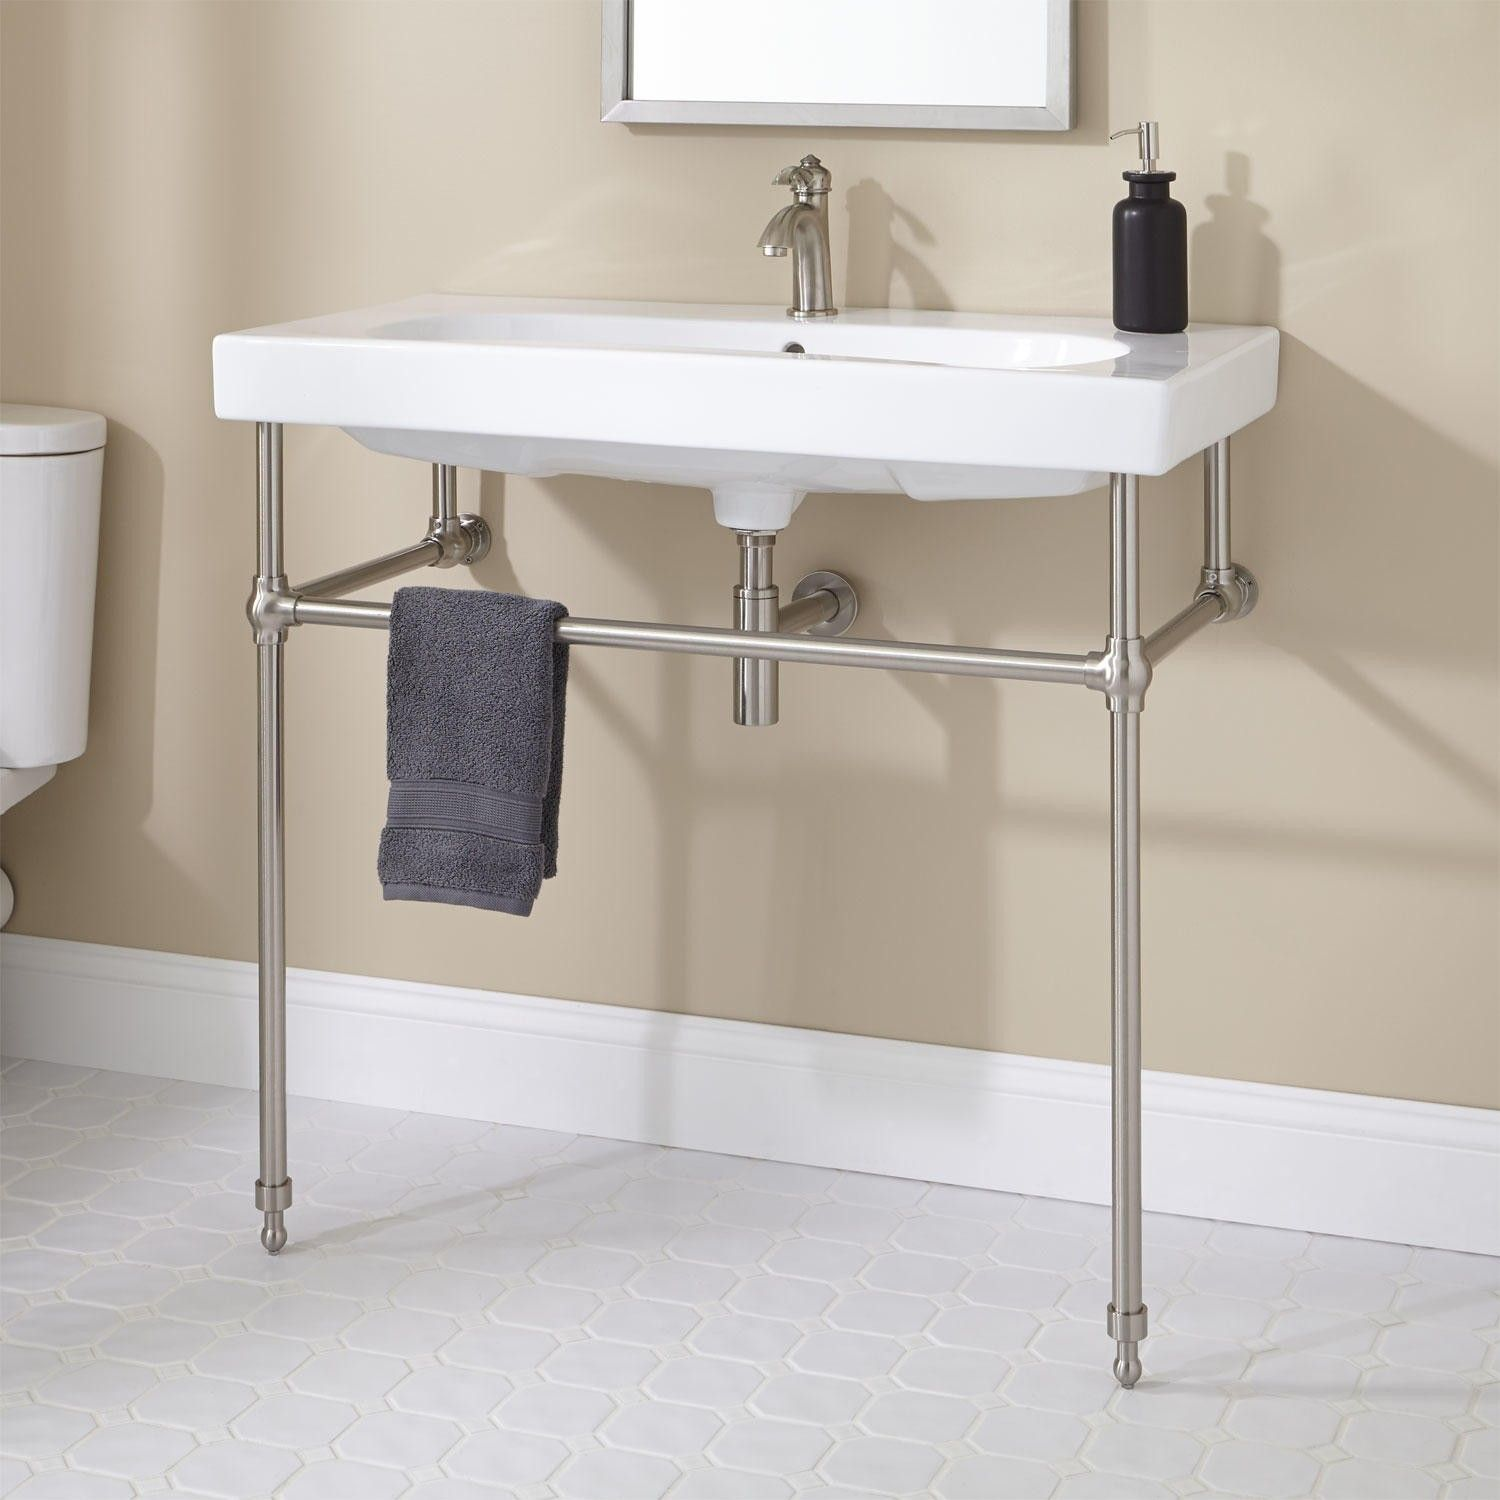 Console Sink Part - 24: Bathroom Furniture, Fixtures And Decor